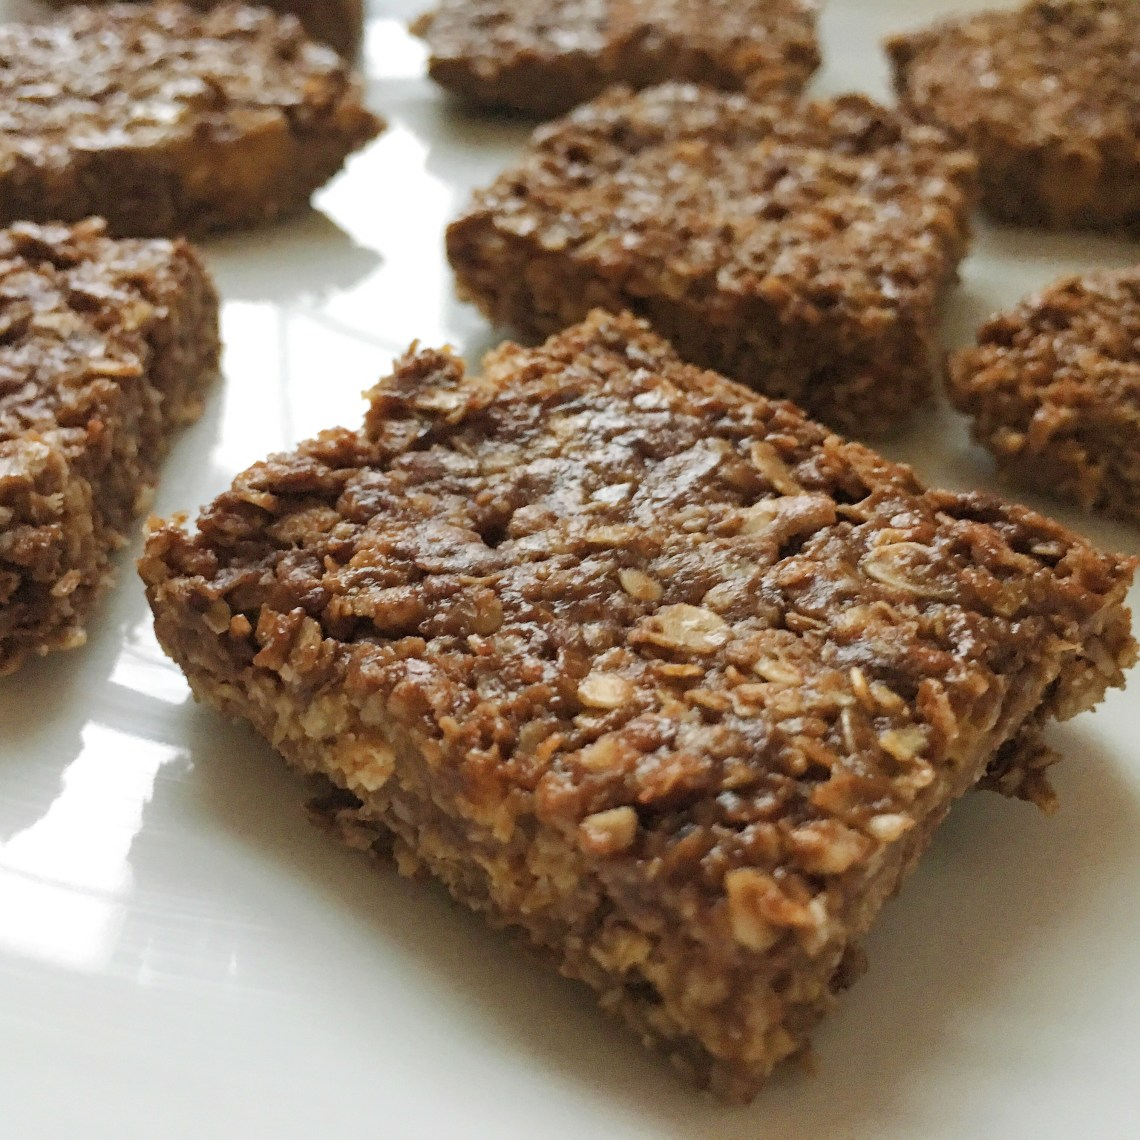 No Bake Chocolate Peanut Butter Oat Bars |